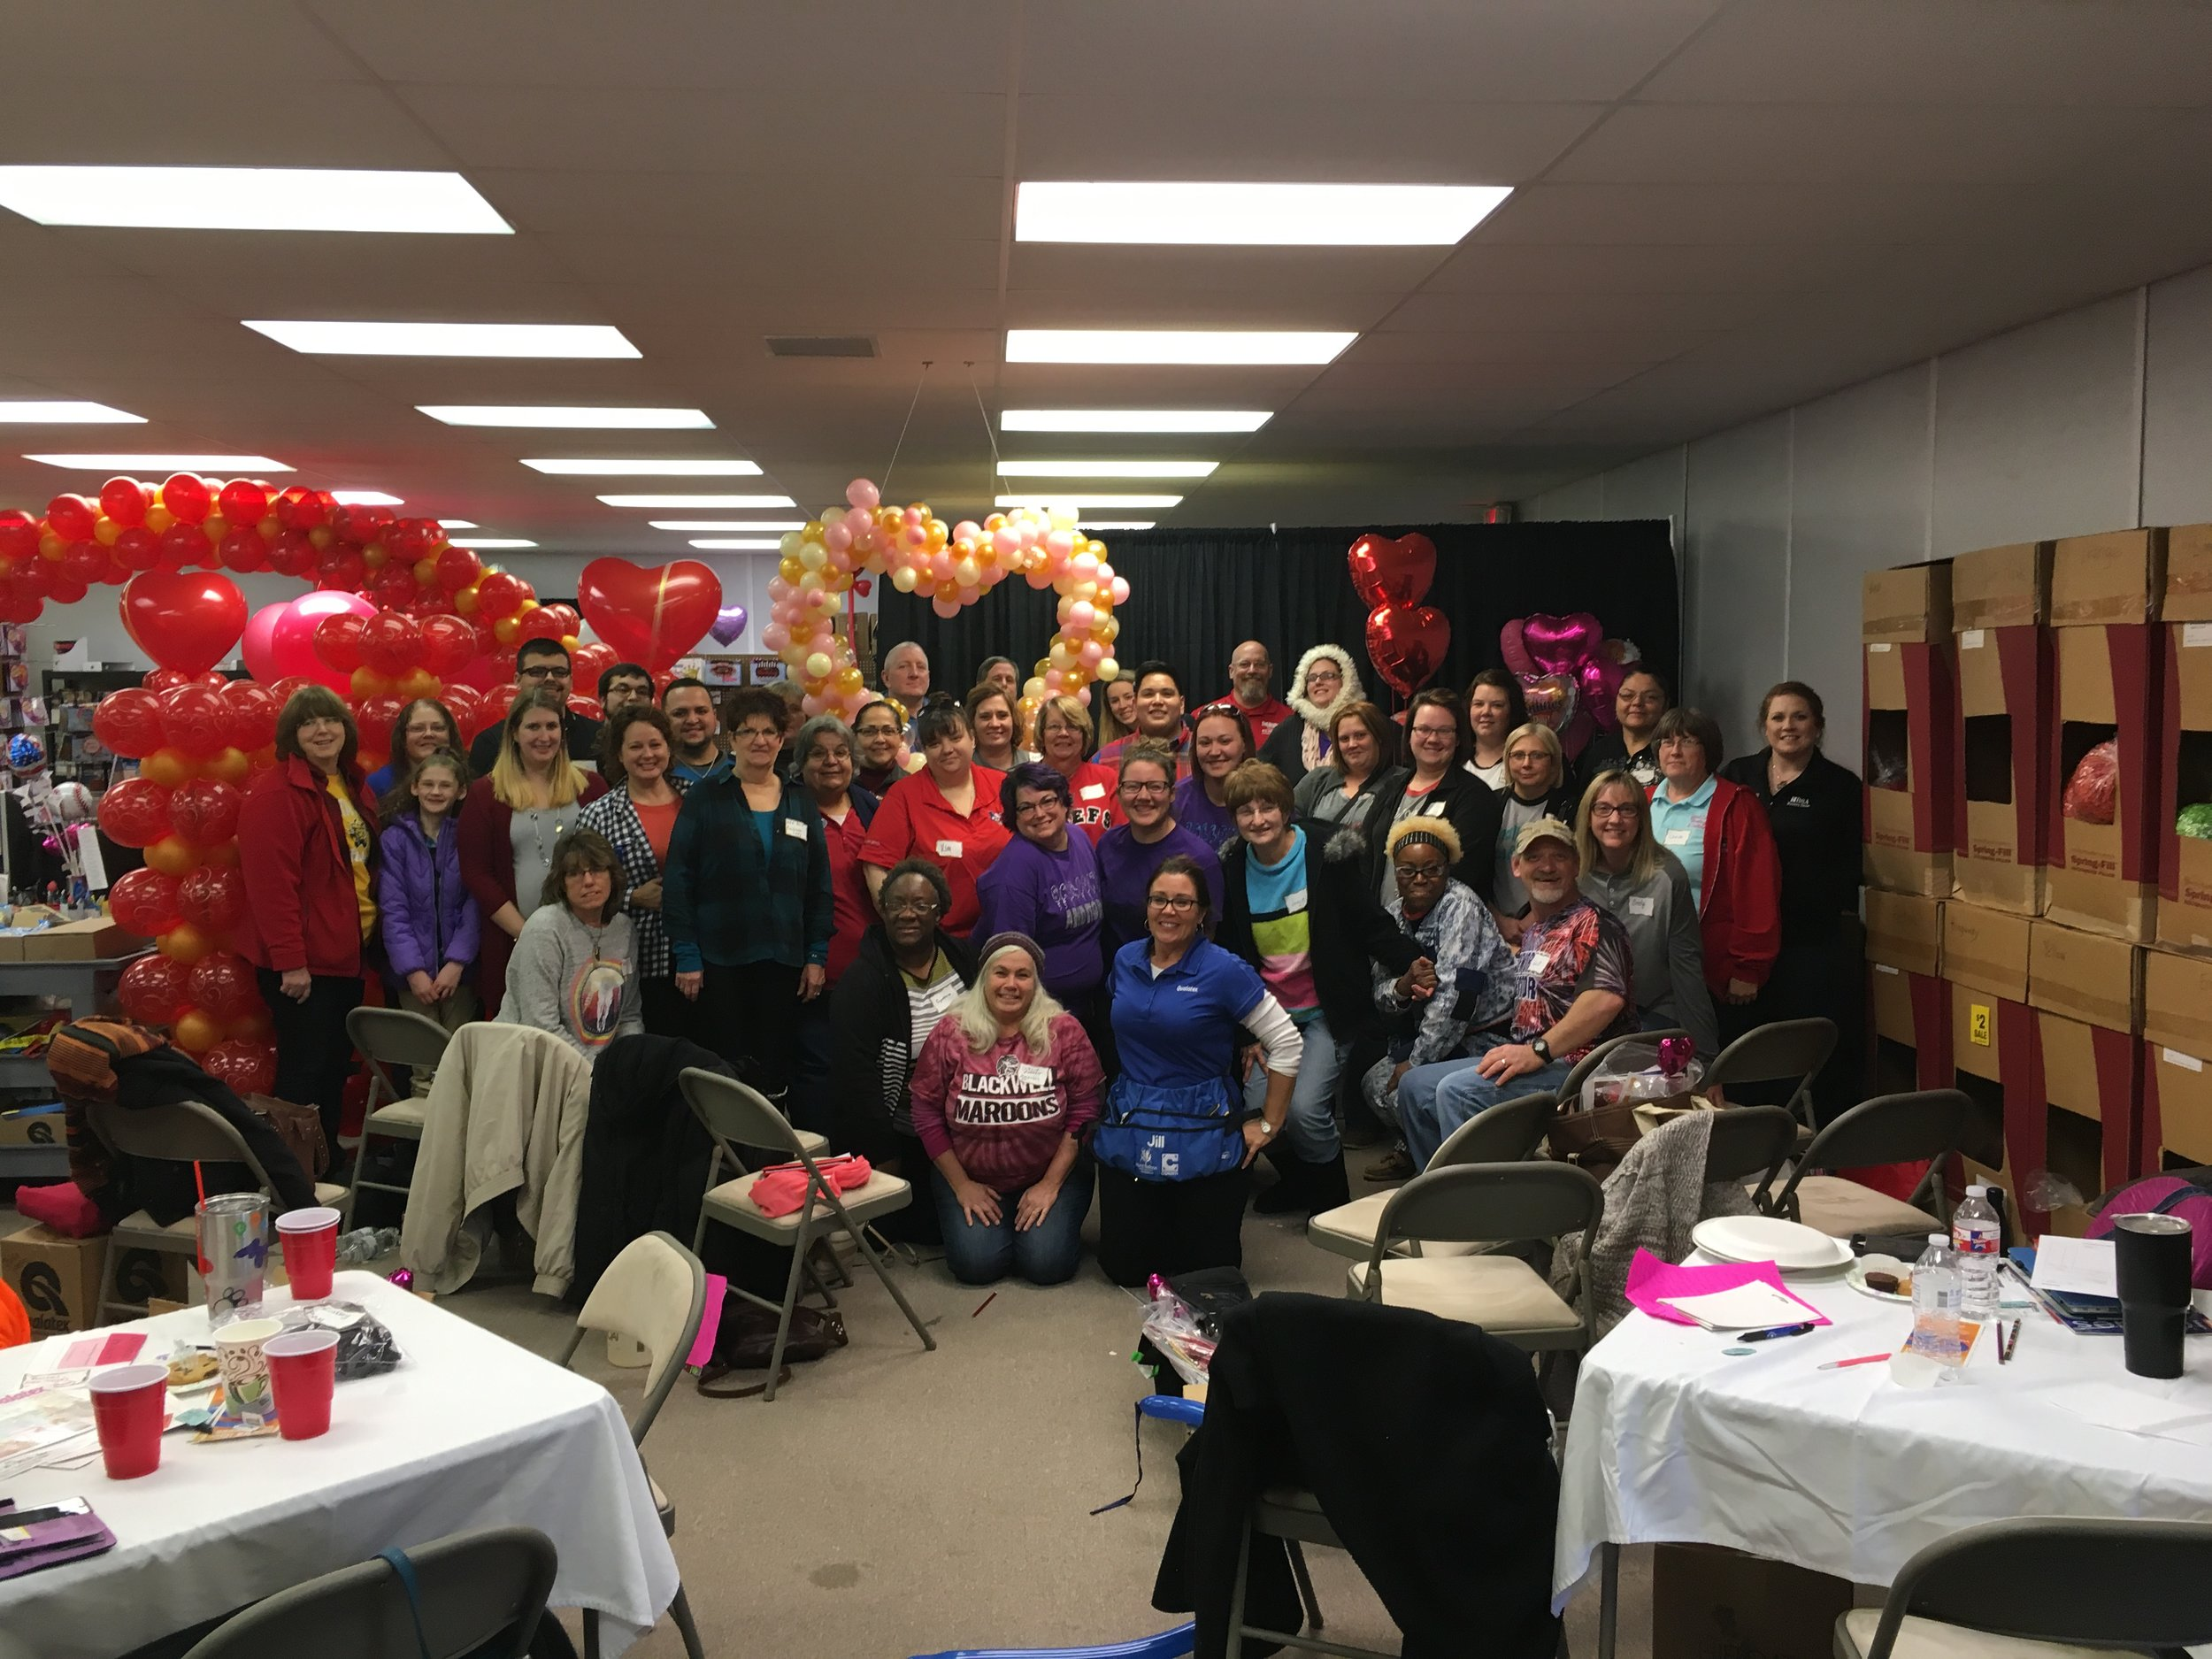 Look at all these smiling faces at Balloon World in Andover